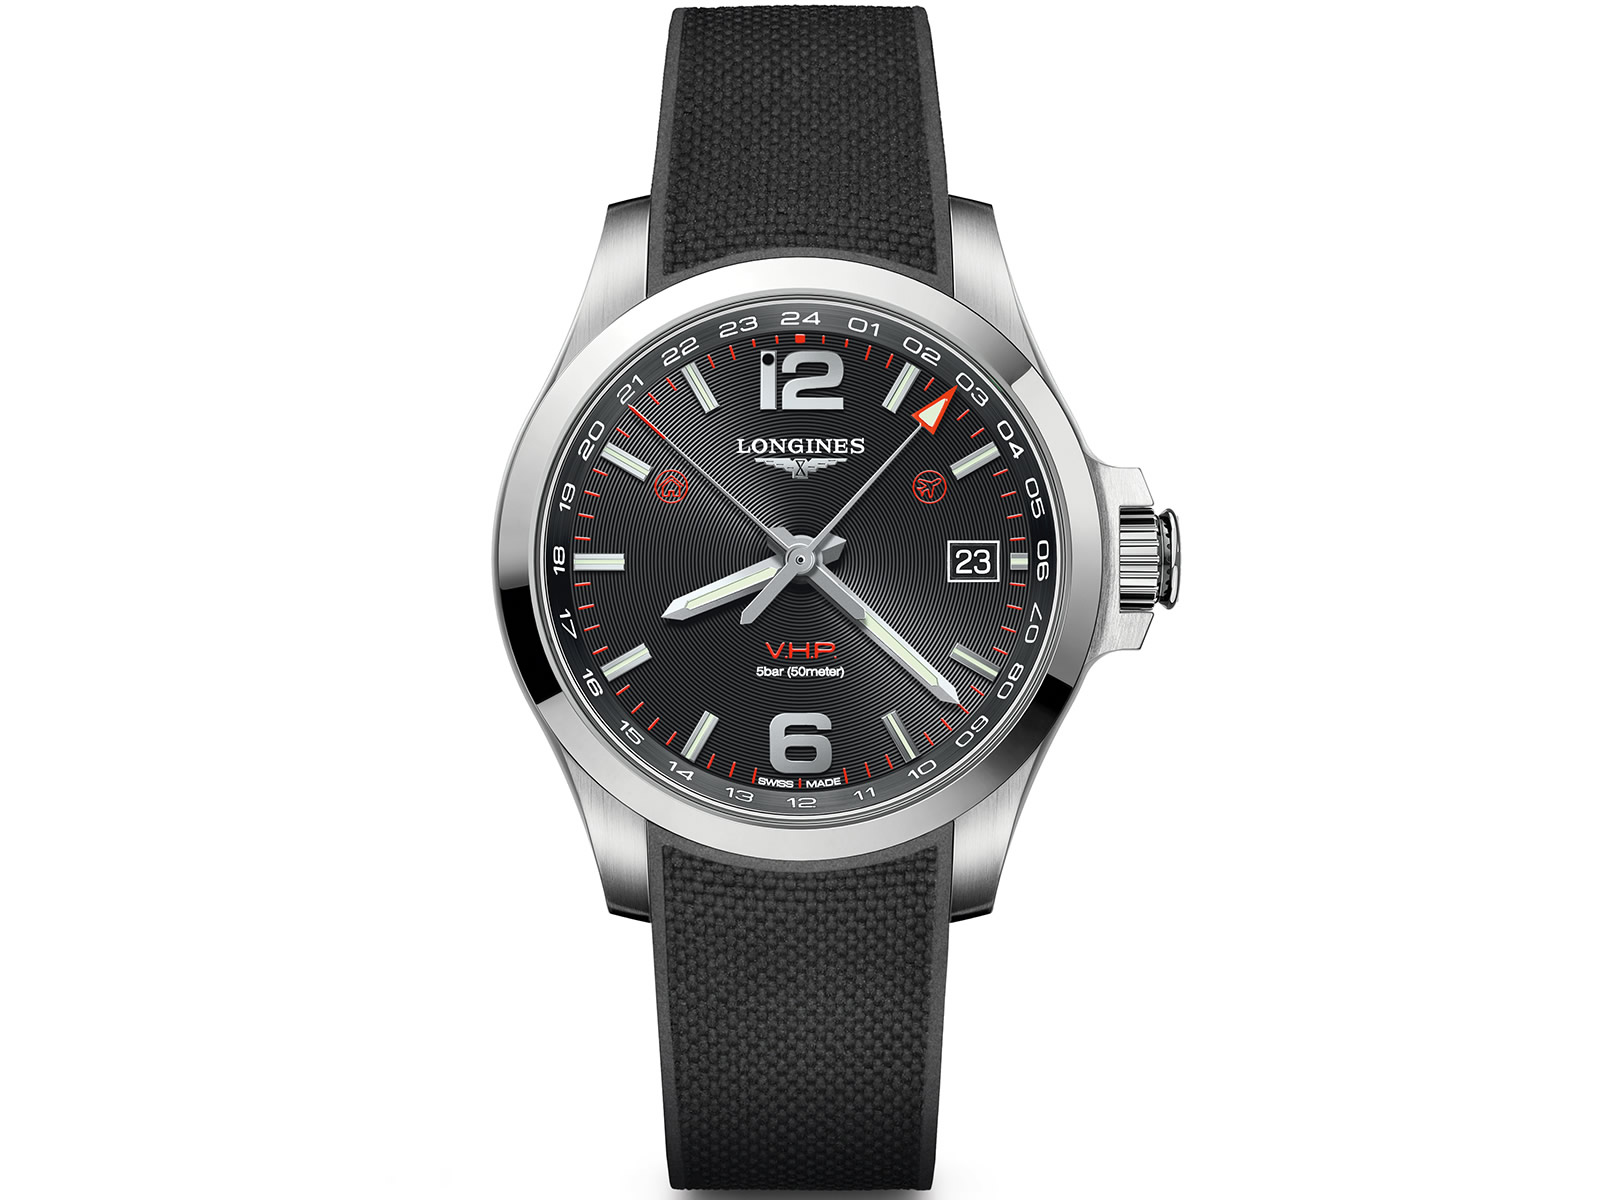 l3-718-4-56-9-longines-conquest-v-h-p-gmt-flash-setting-.jpg